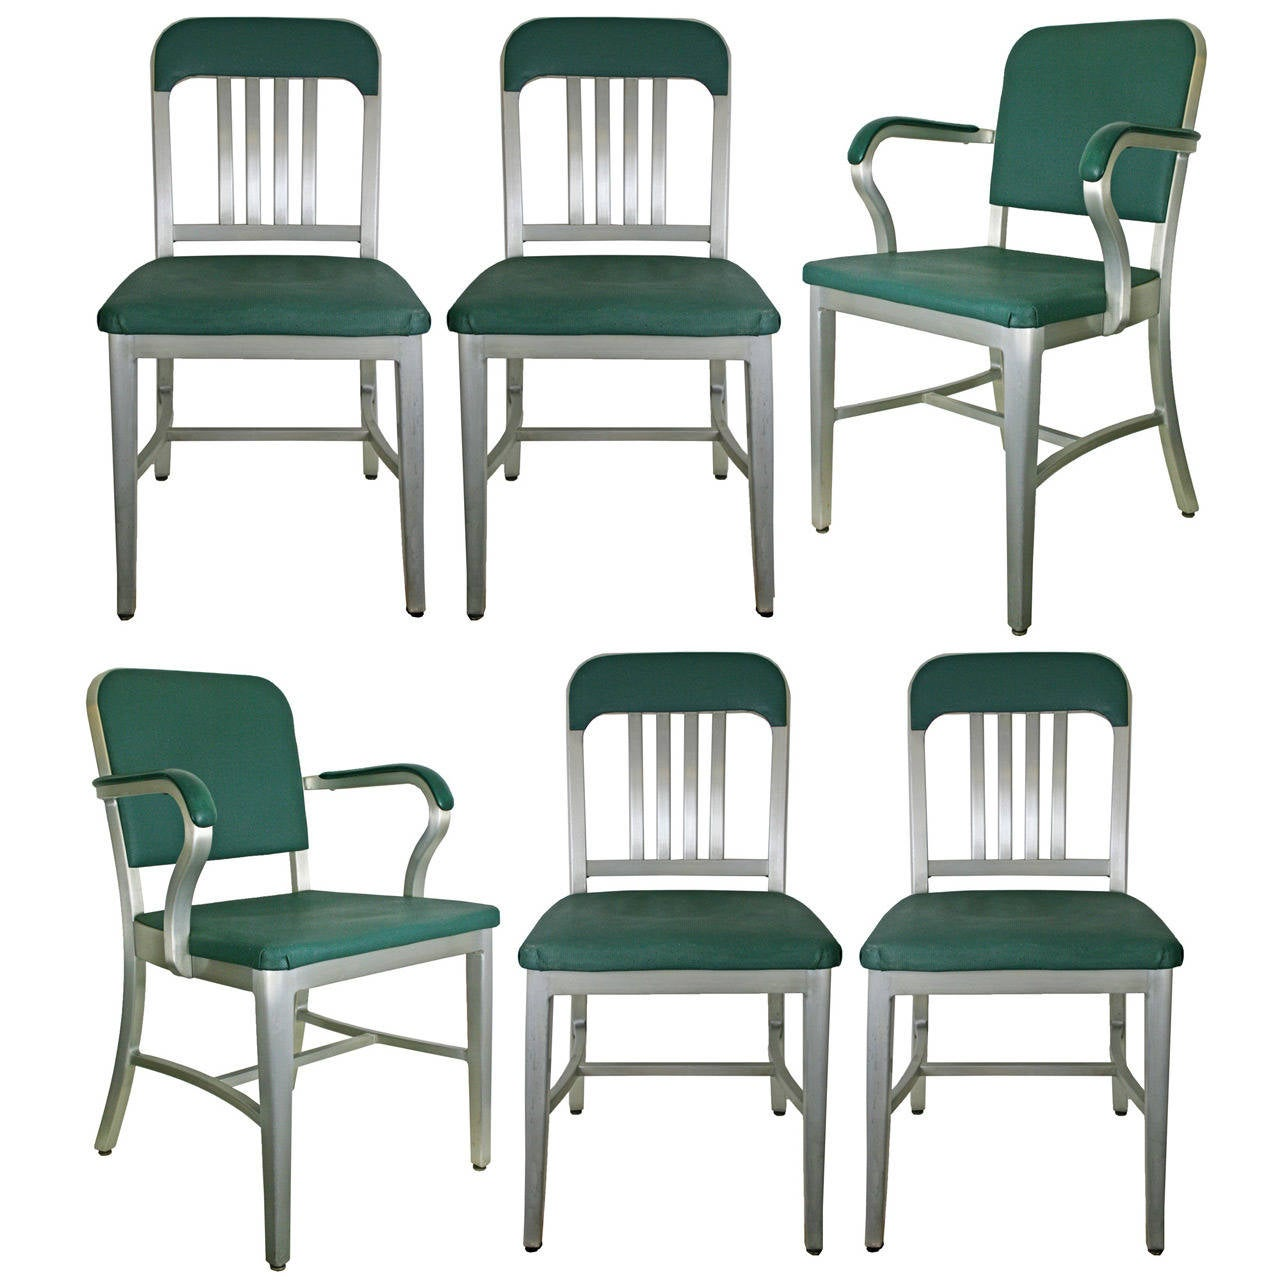 Set Of 6 Early Goodform Office Chairs C1940 At 1stdibs